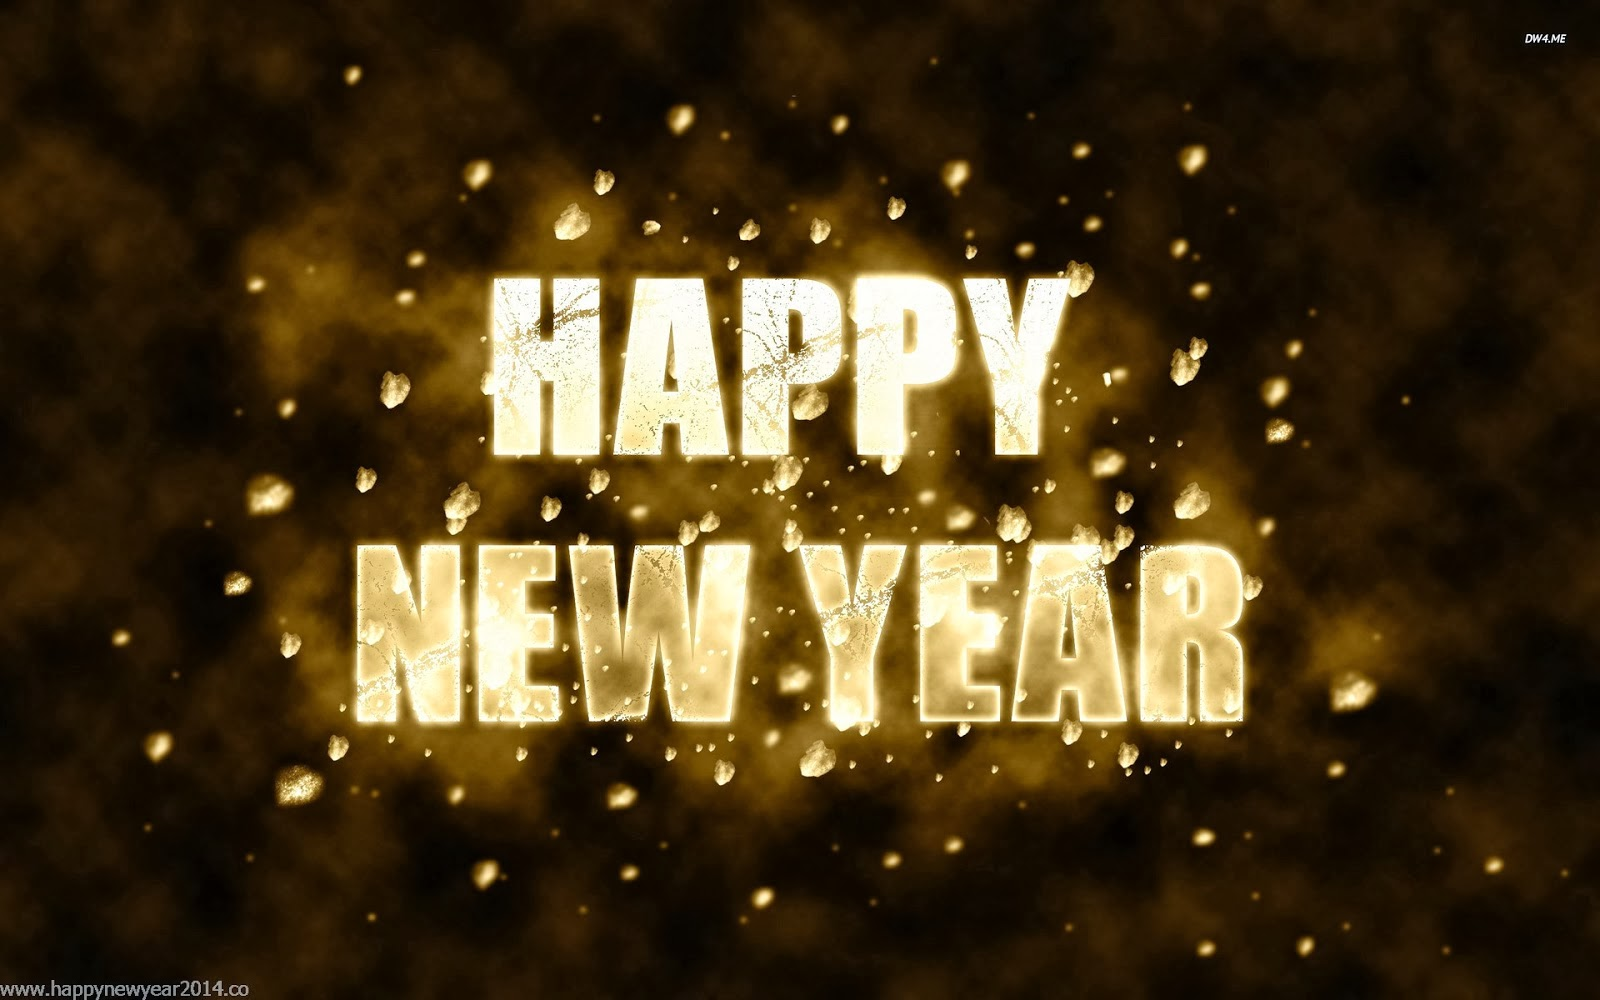 Happy New Year 2015 Wallpapers Messages 1600x1000